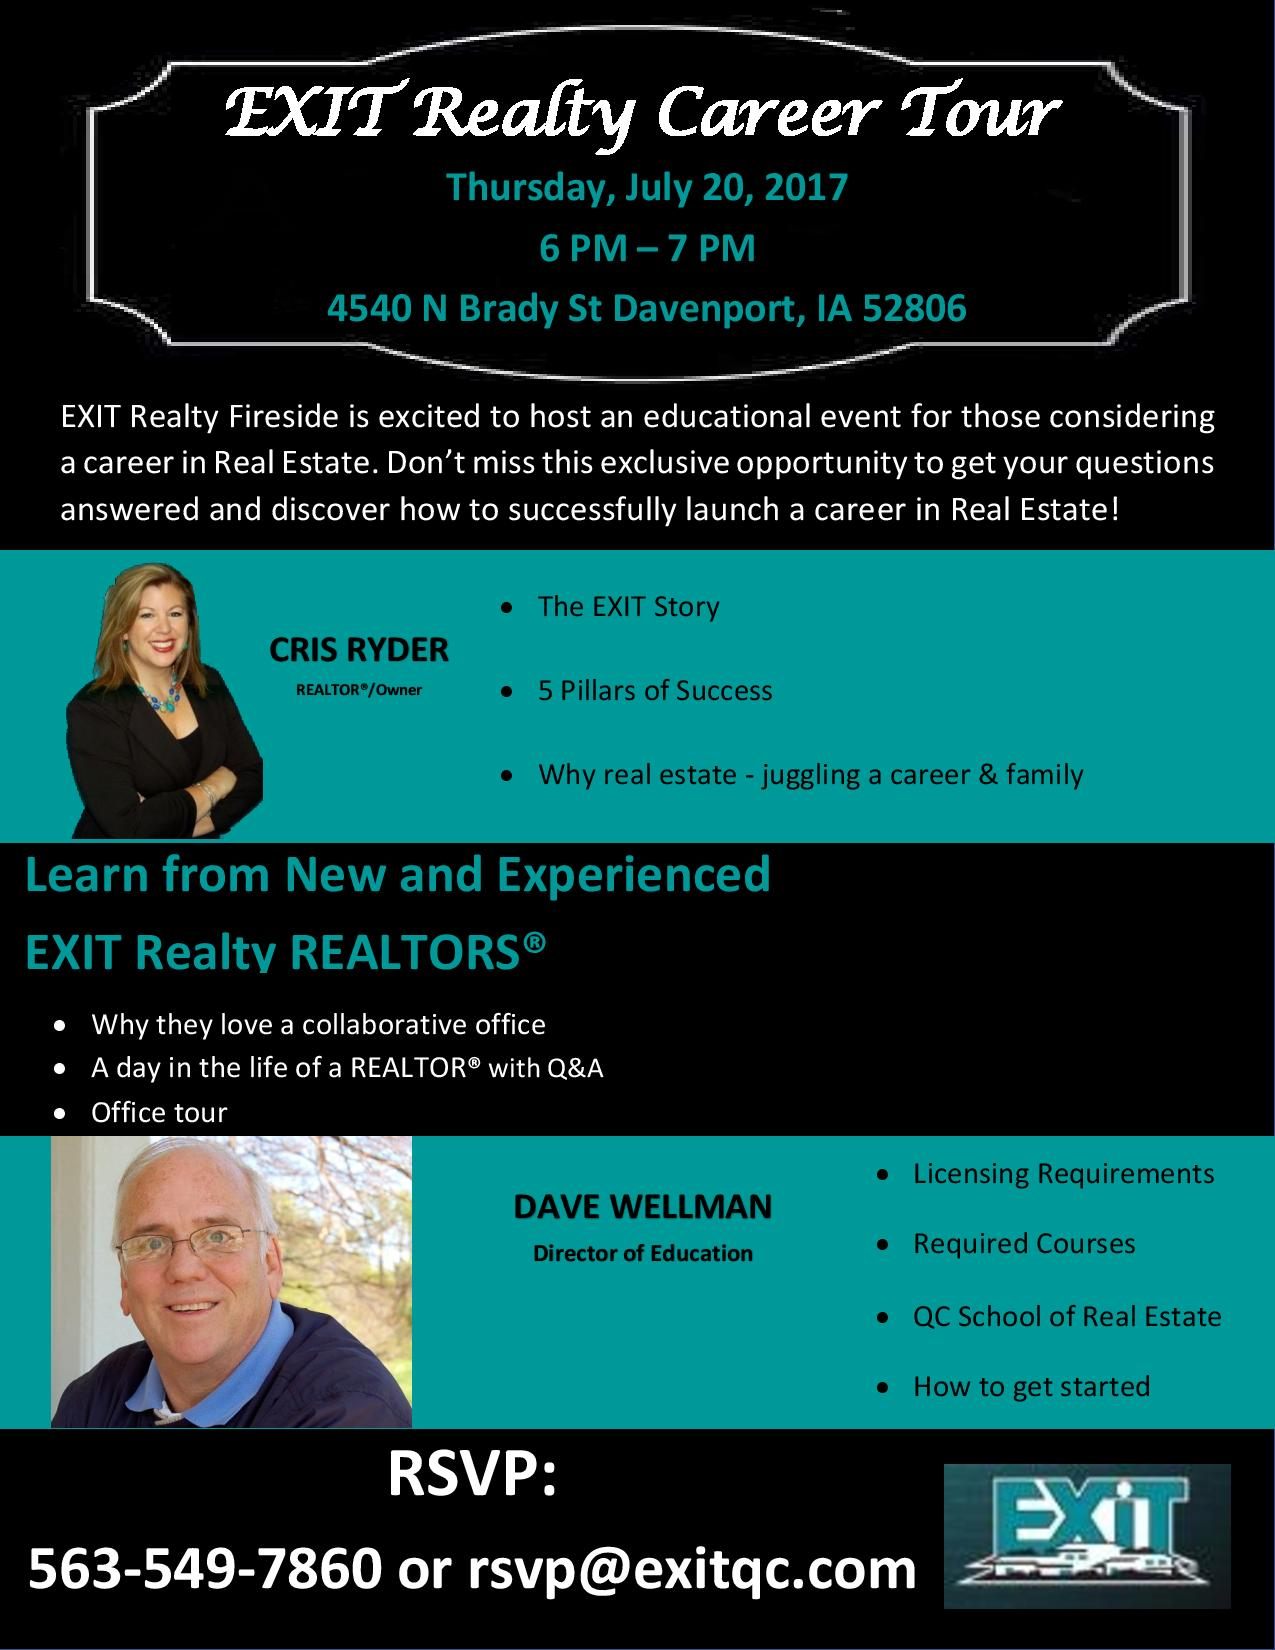 EXIT Realty Career Tour - July 20th!